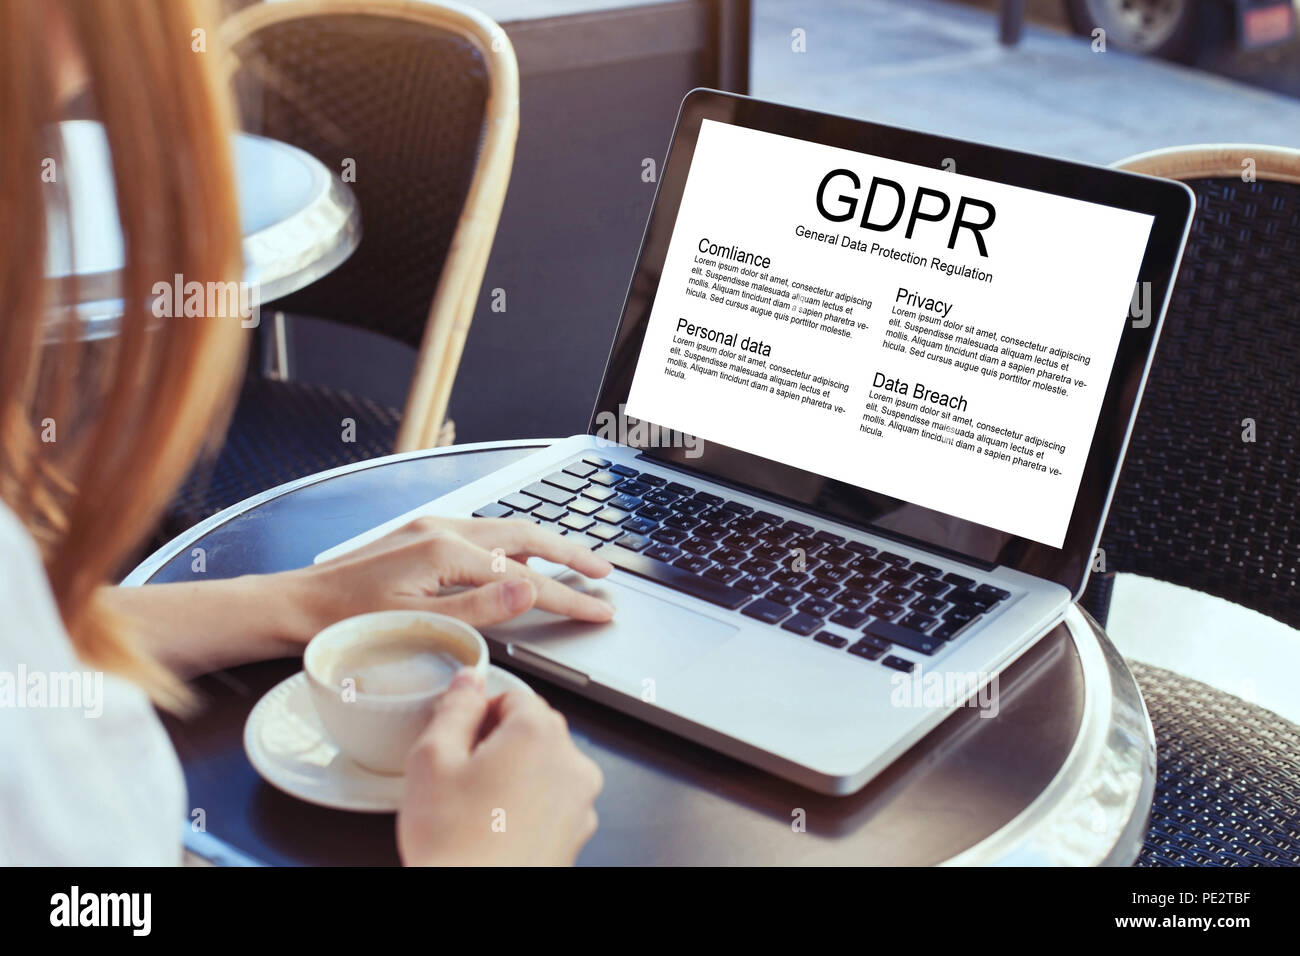 GDPR concept, woman reading about General Data Protection Regulation, private information - Stock Image